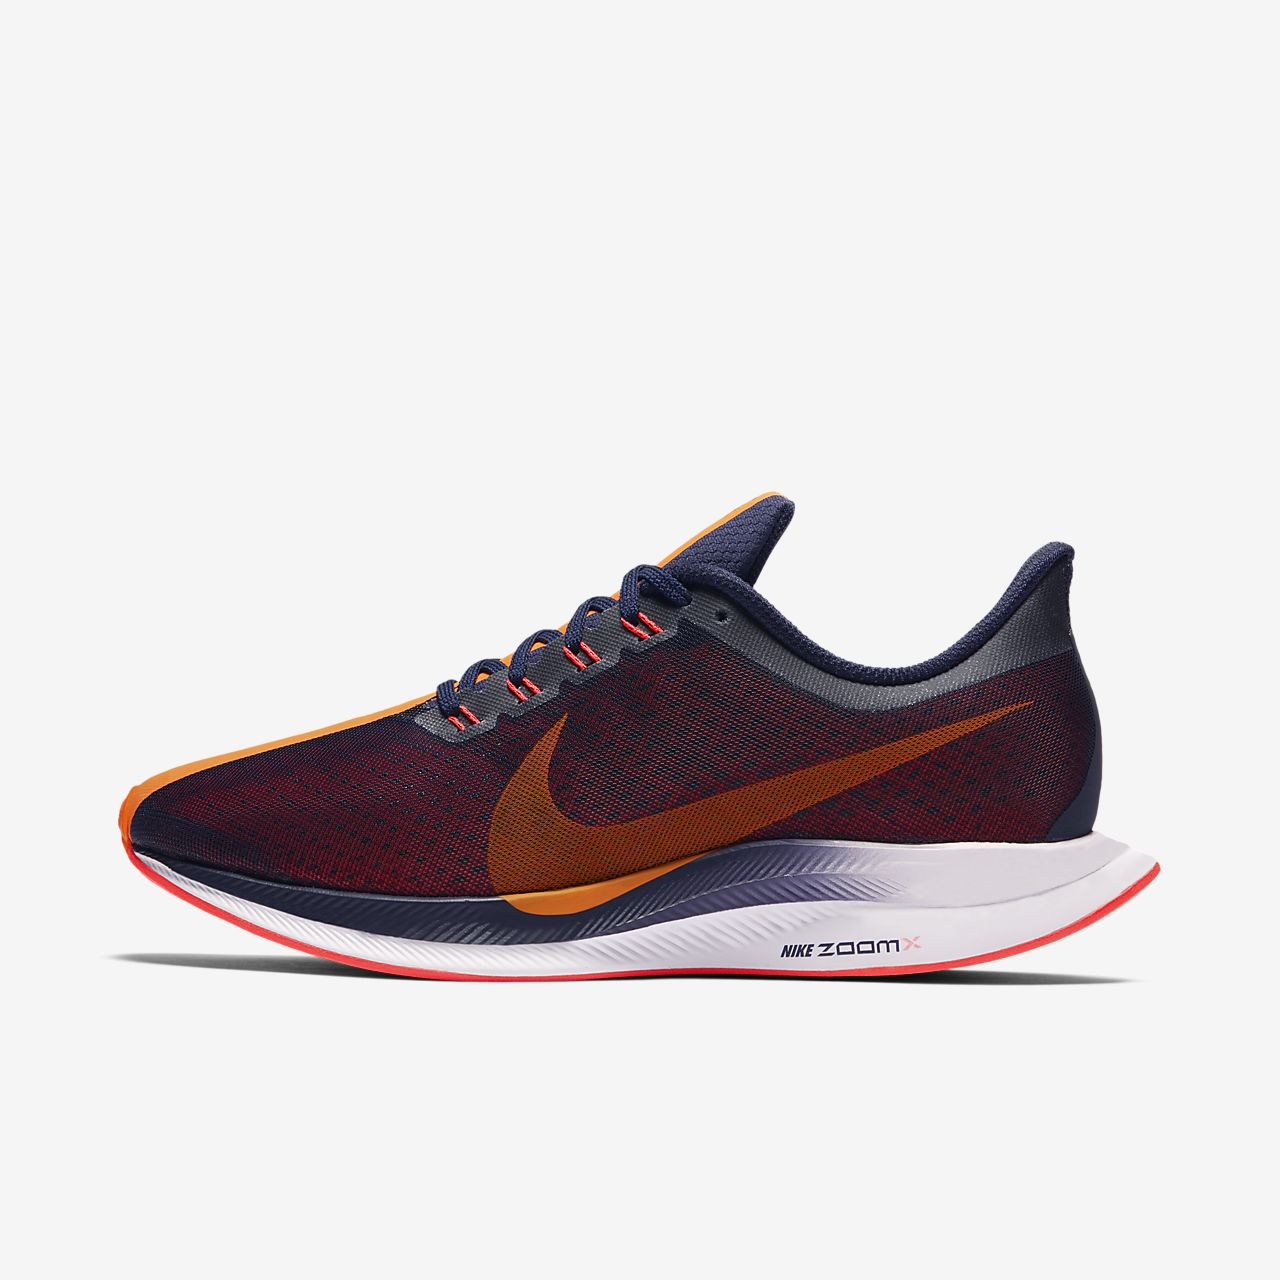 eaefd33fea1b Nike Zoom Pegasus Turbo Women s Running Shoe. Nike.com AT